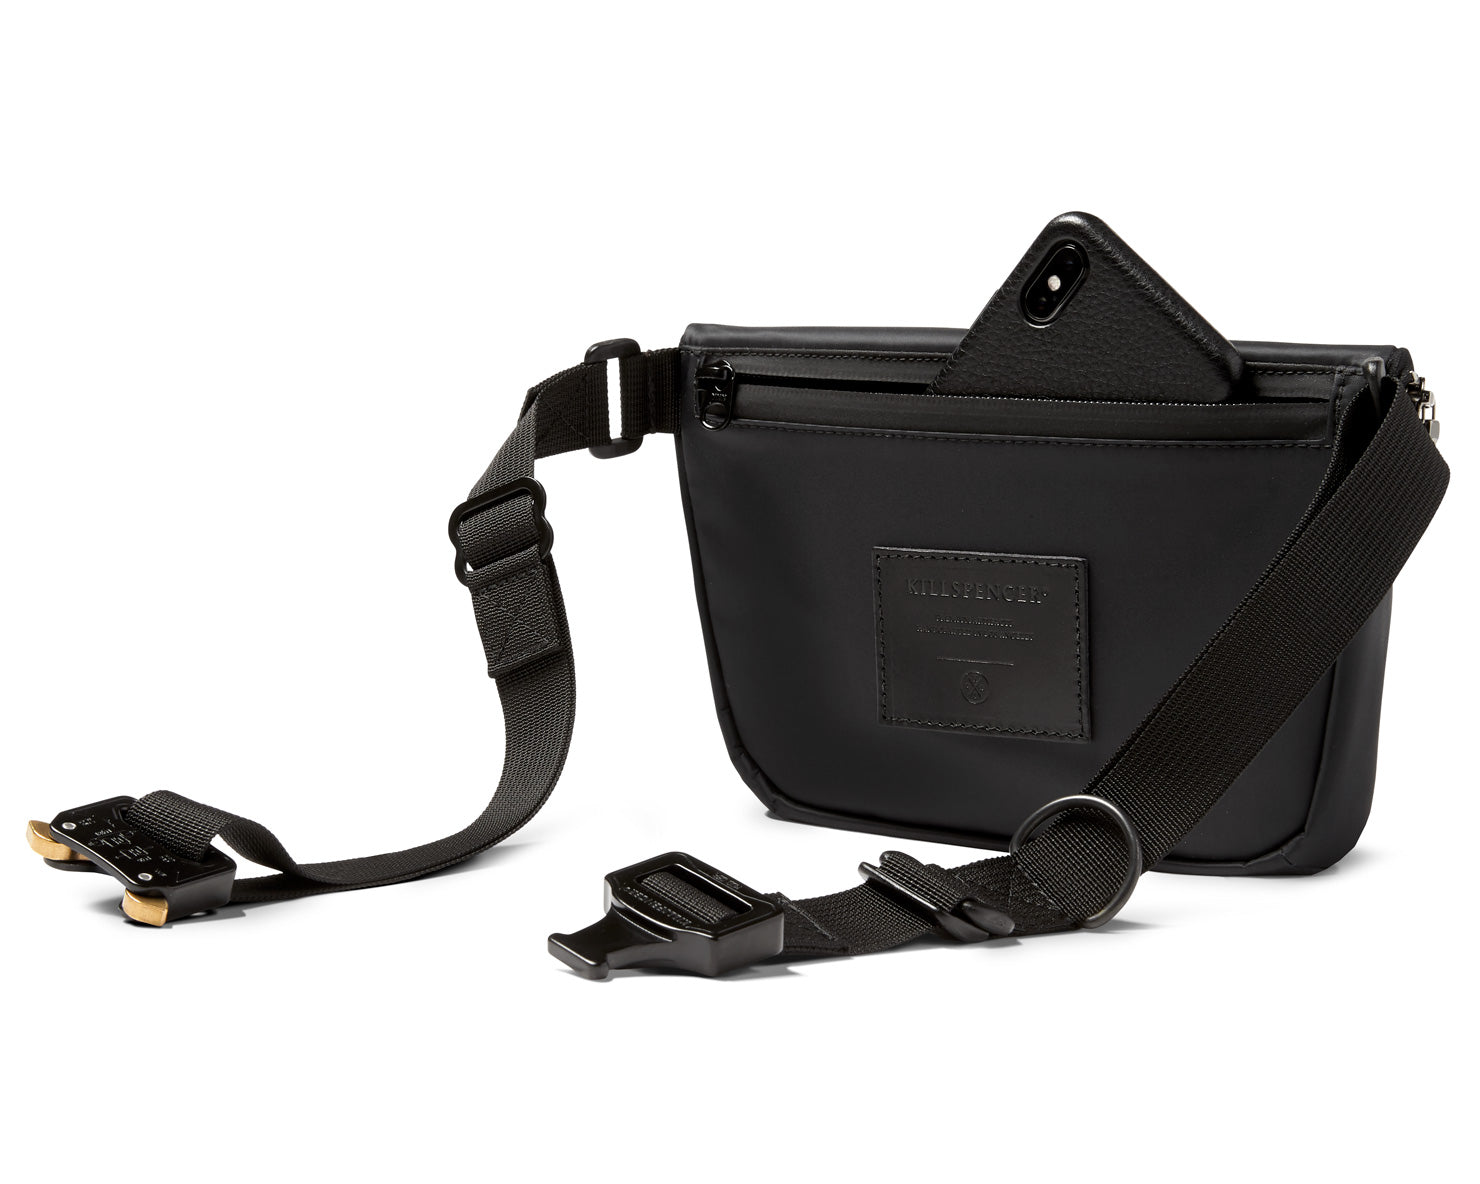 BELT BAG 2.0 | KILLSPENCER® - Black Nylon